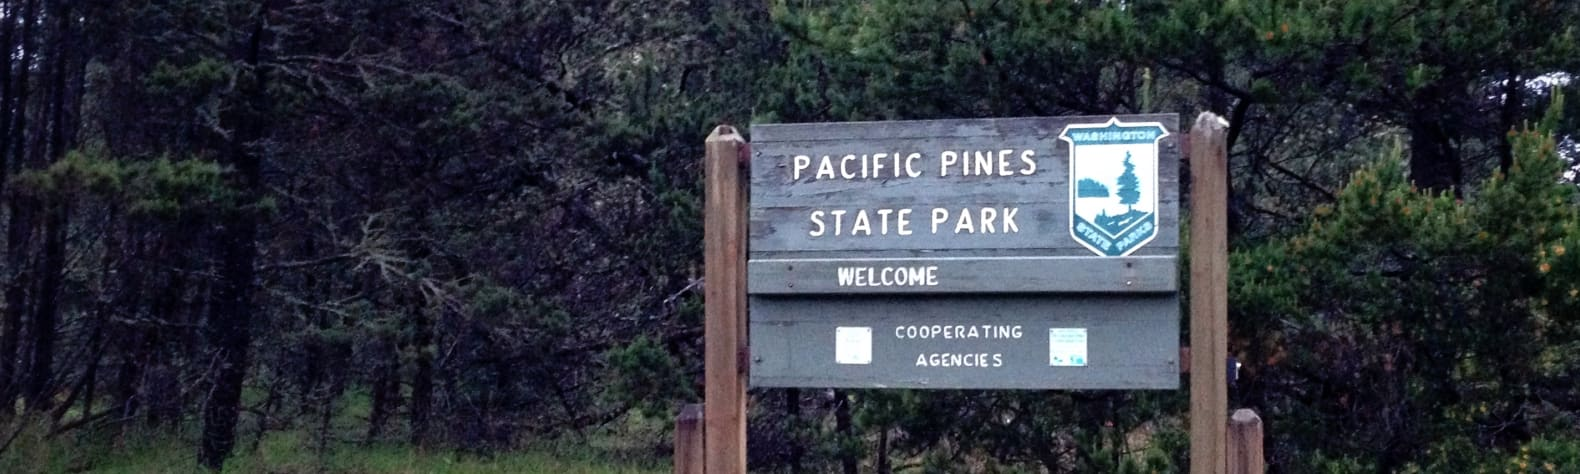 Pacific Pines State Park